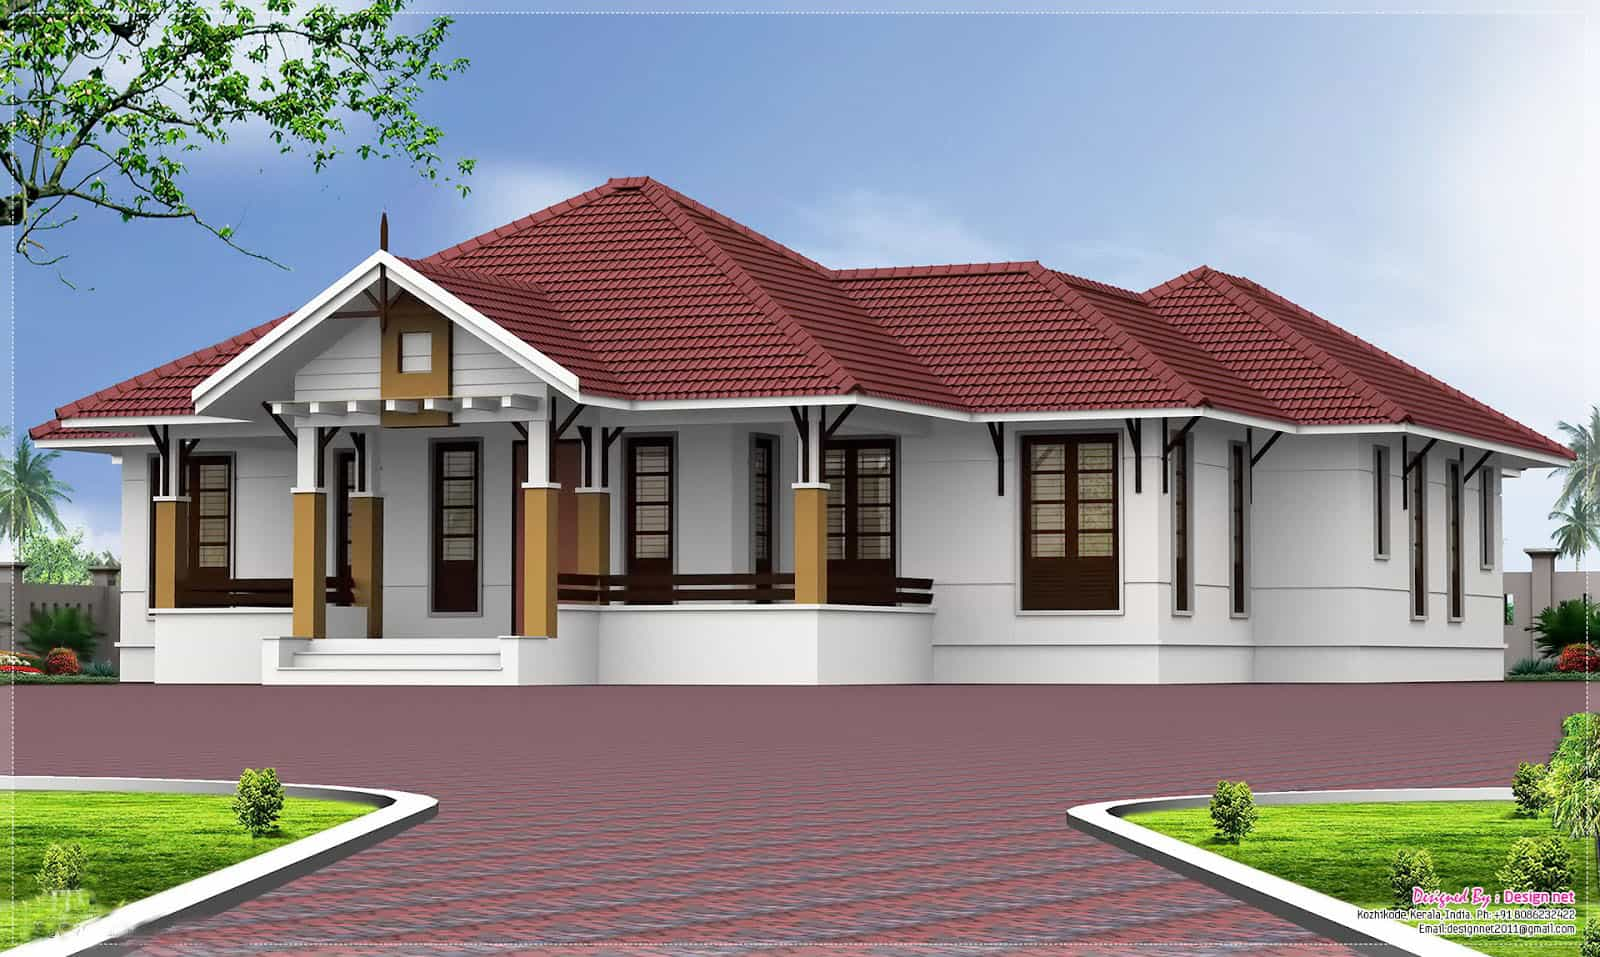 Single floor house designs kerala house planner House designs single floor